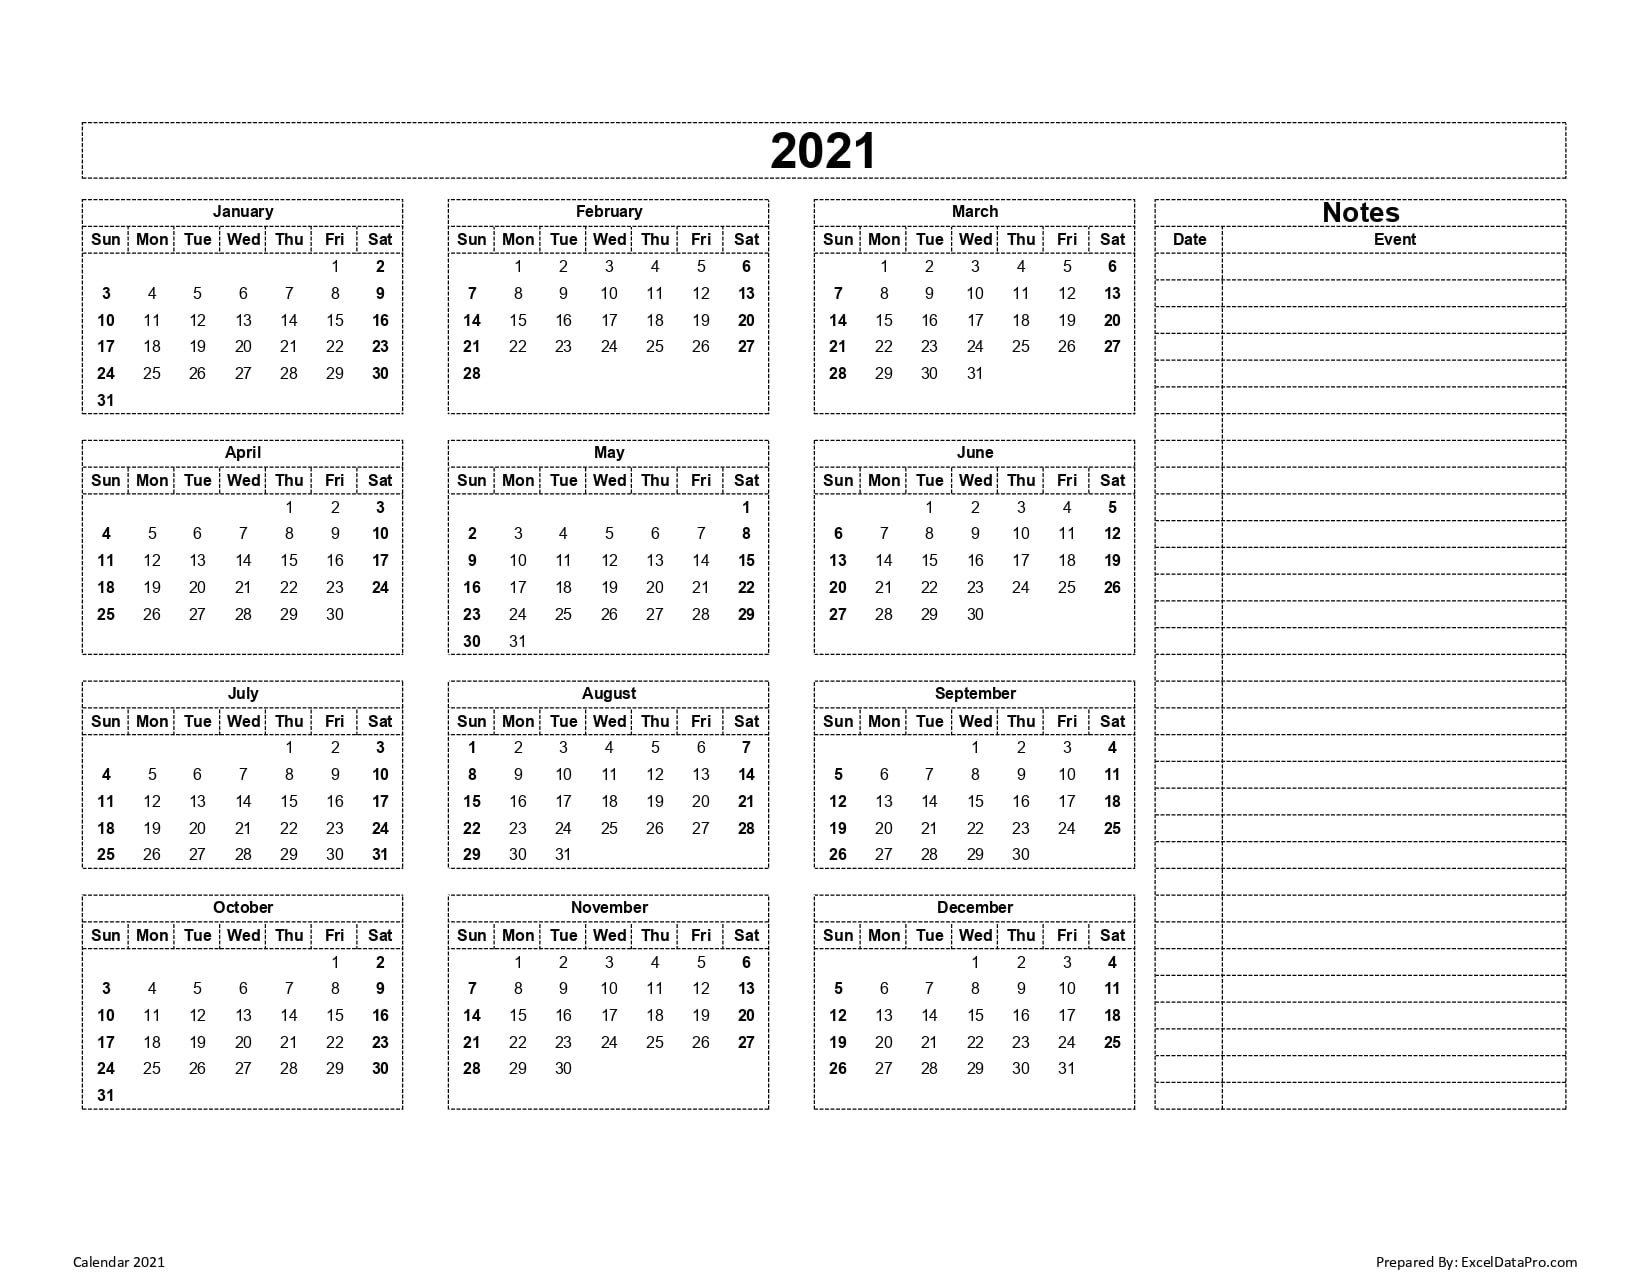 Calendar 2021 Excel Templates, Printable Pdfs & Images - Exceldatapro with regard to 2021 Calendar With Date Boxes Photo